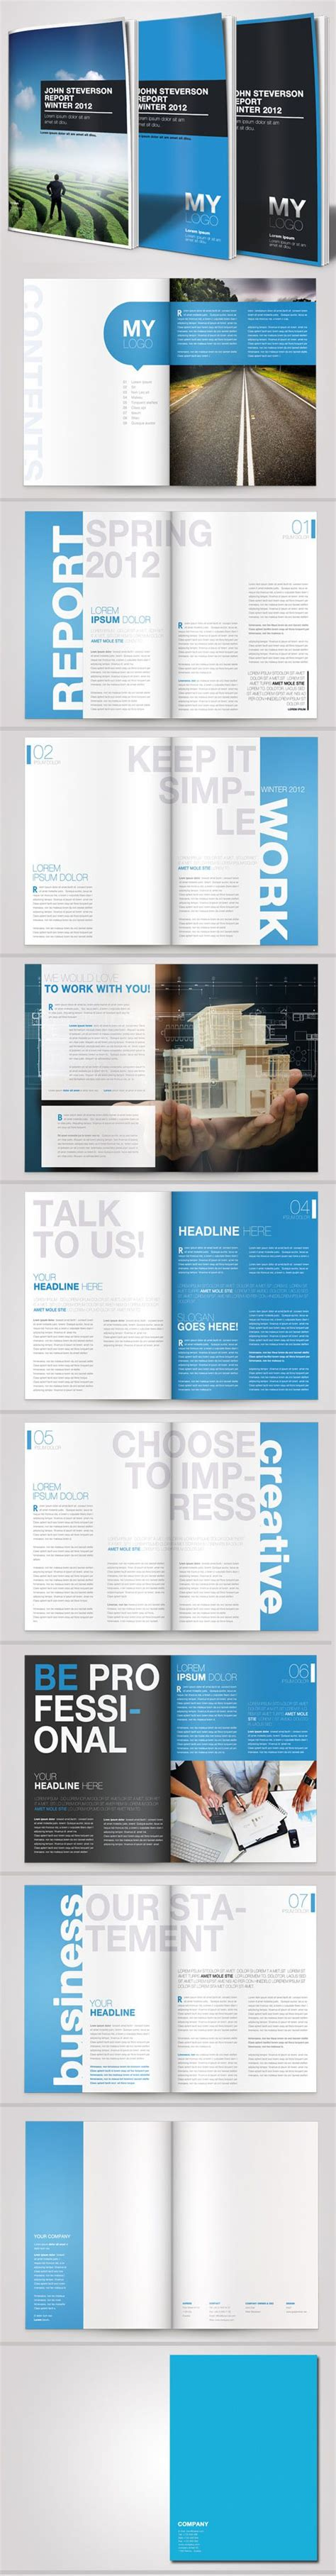 layout design on behance 193 best images about brochure design layout on